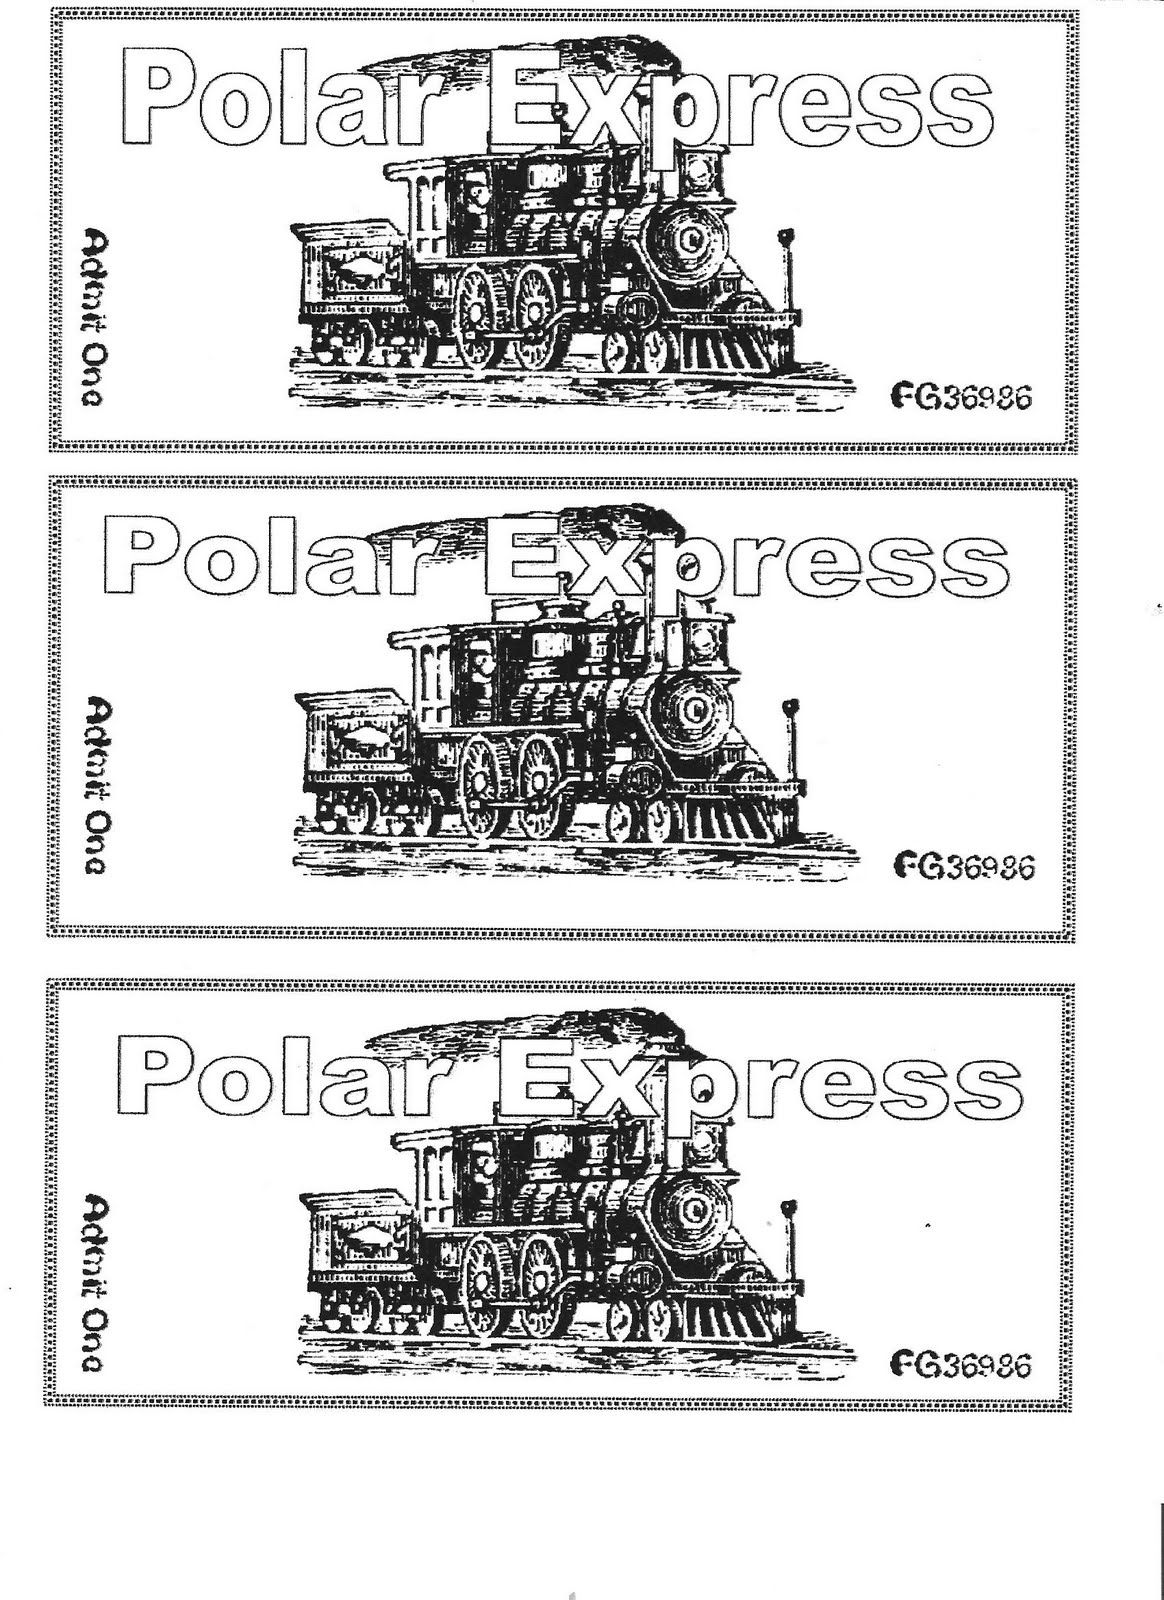 Polar Express Day With Images Polar Express Tickets Polar